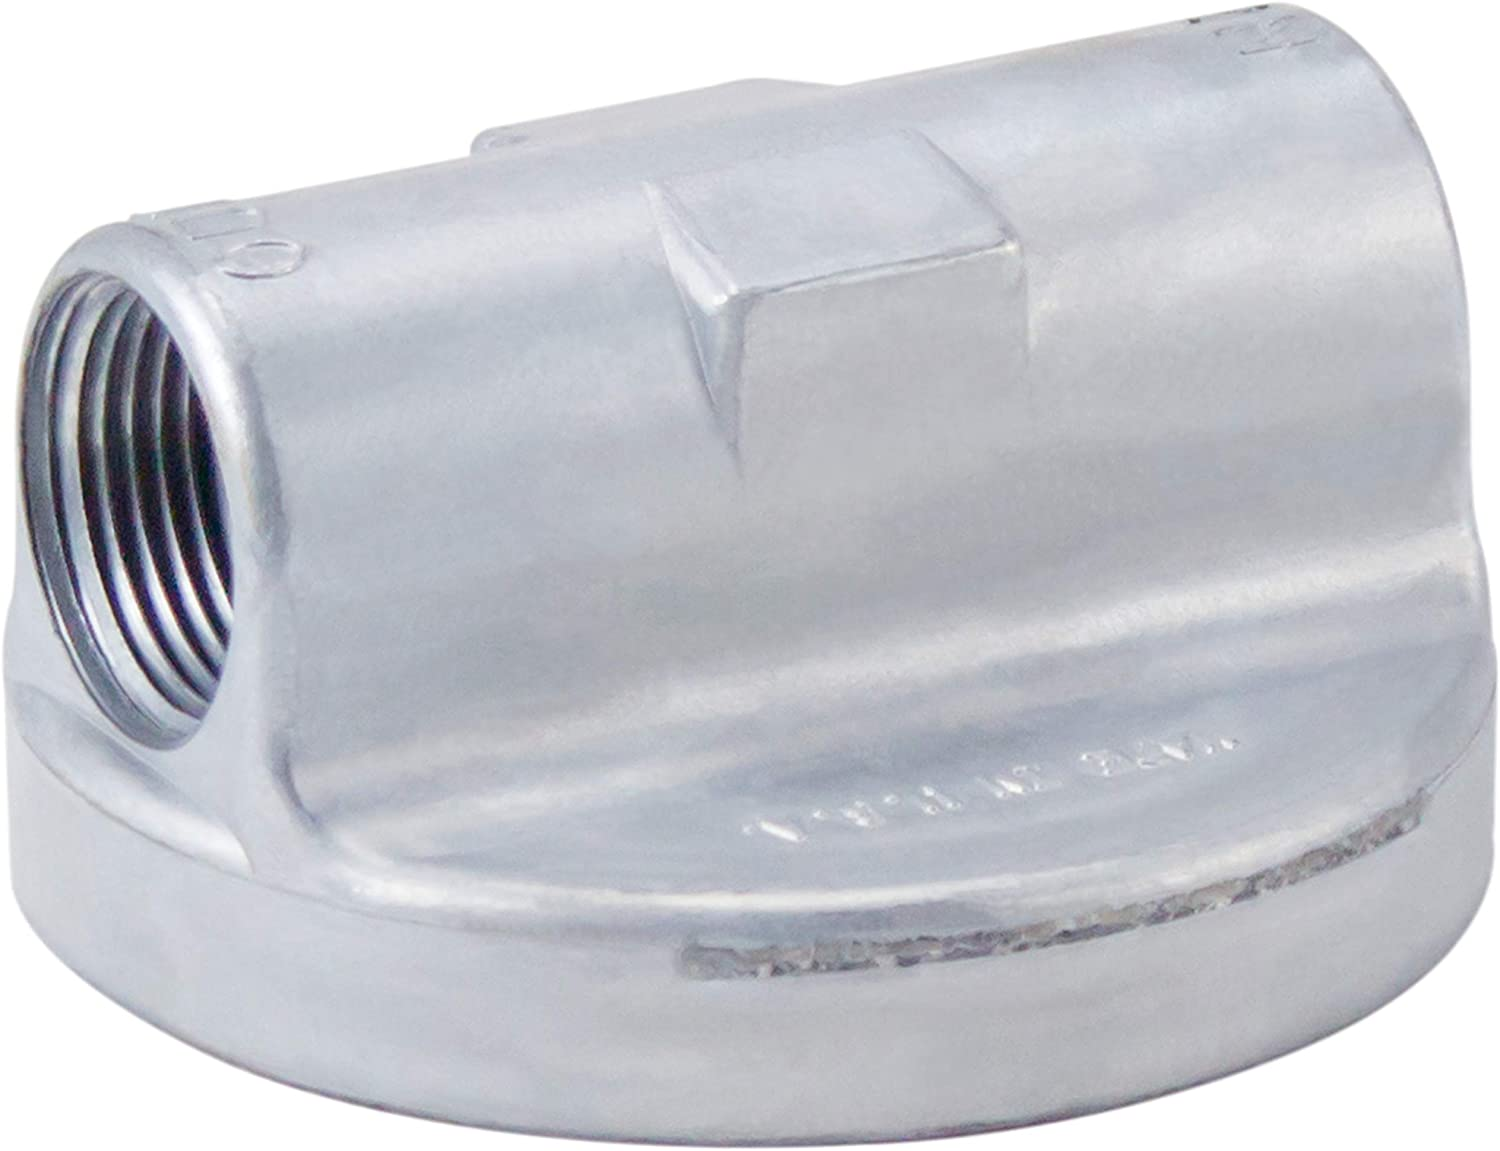 """GOLDENROD 495 Bowl Fuel Tank Filter with 1/"""" NPT Top Cap"""